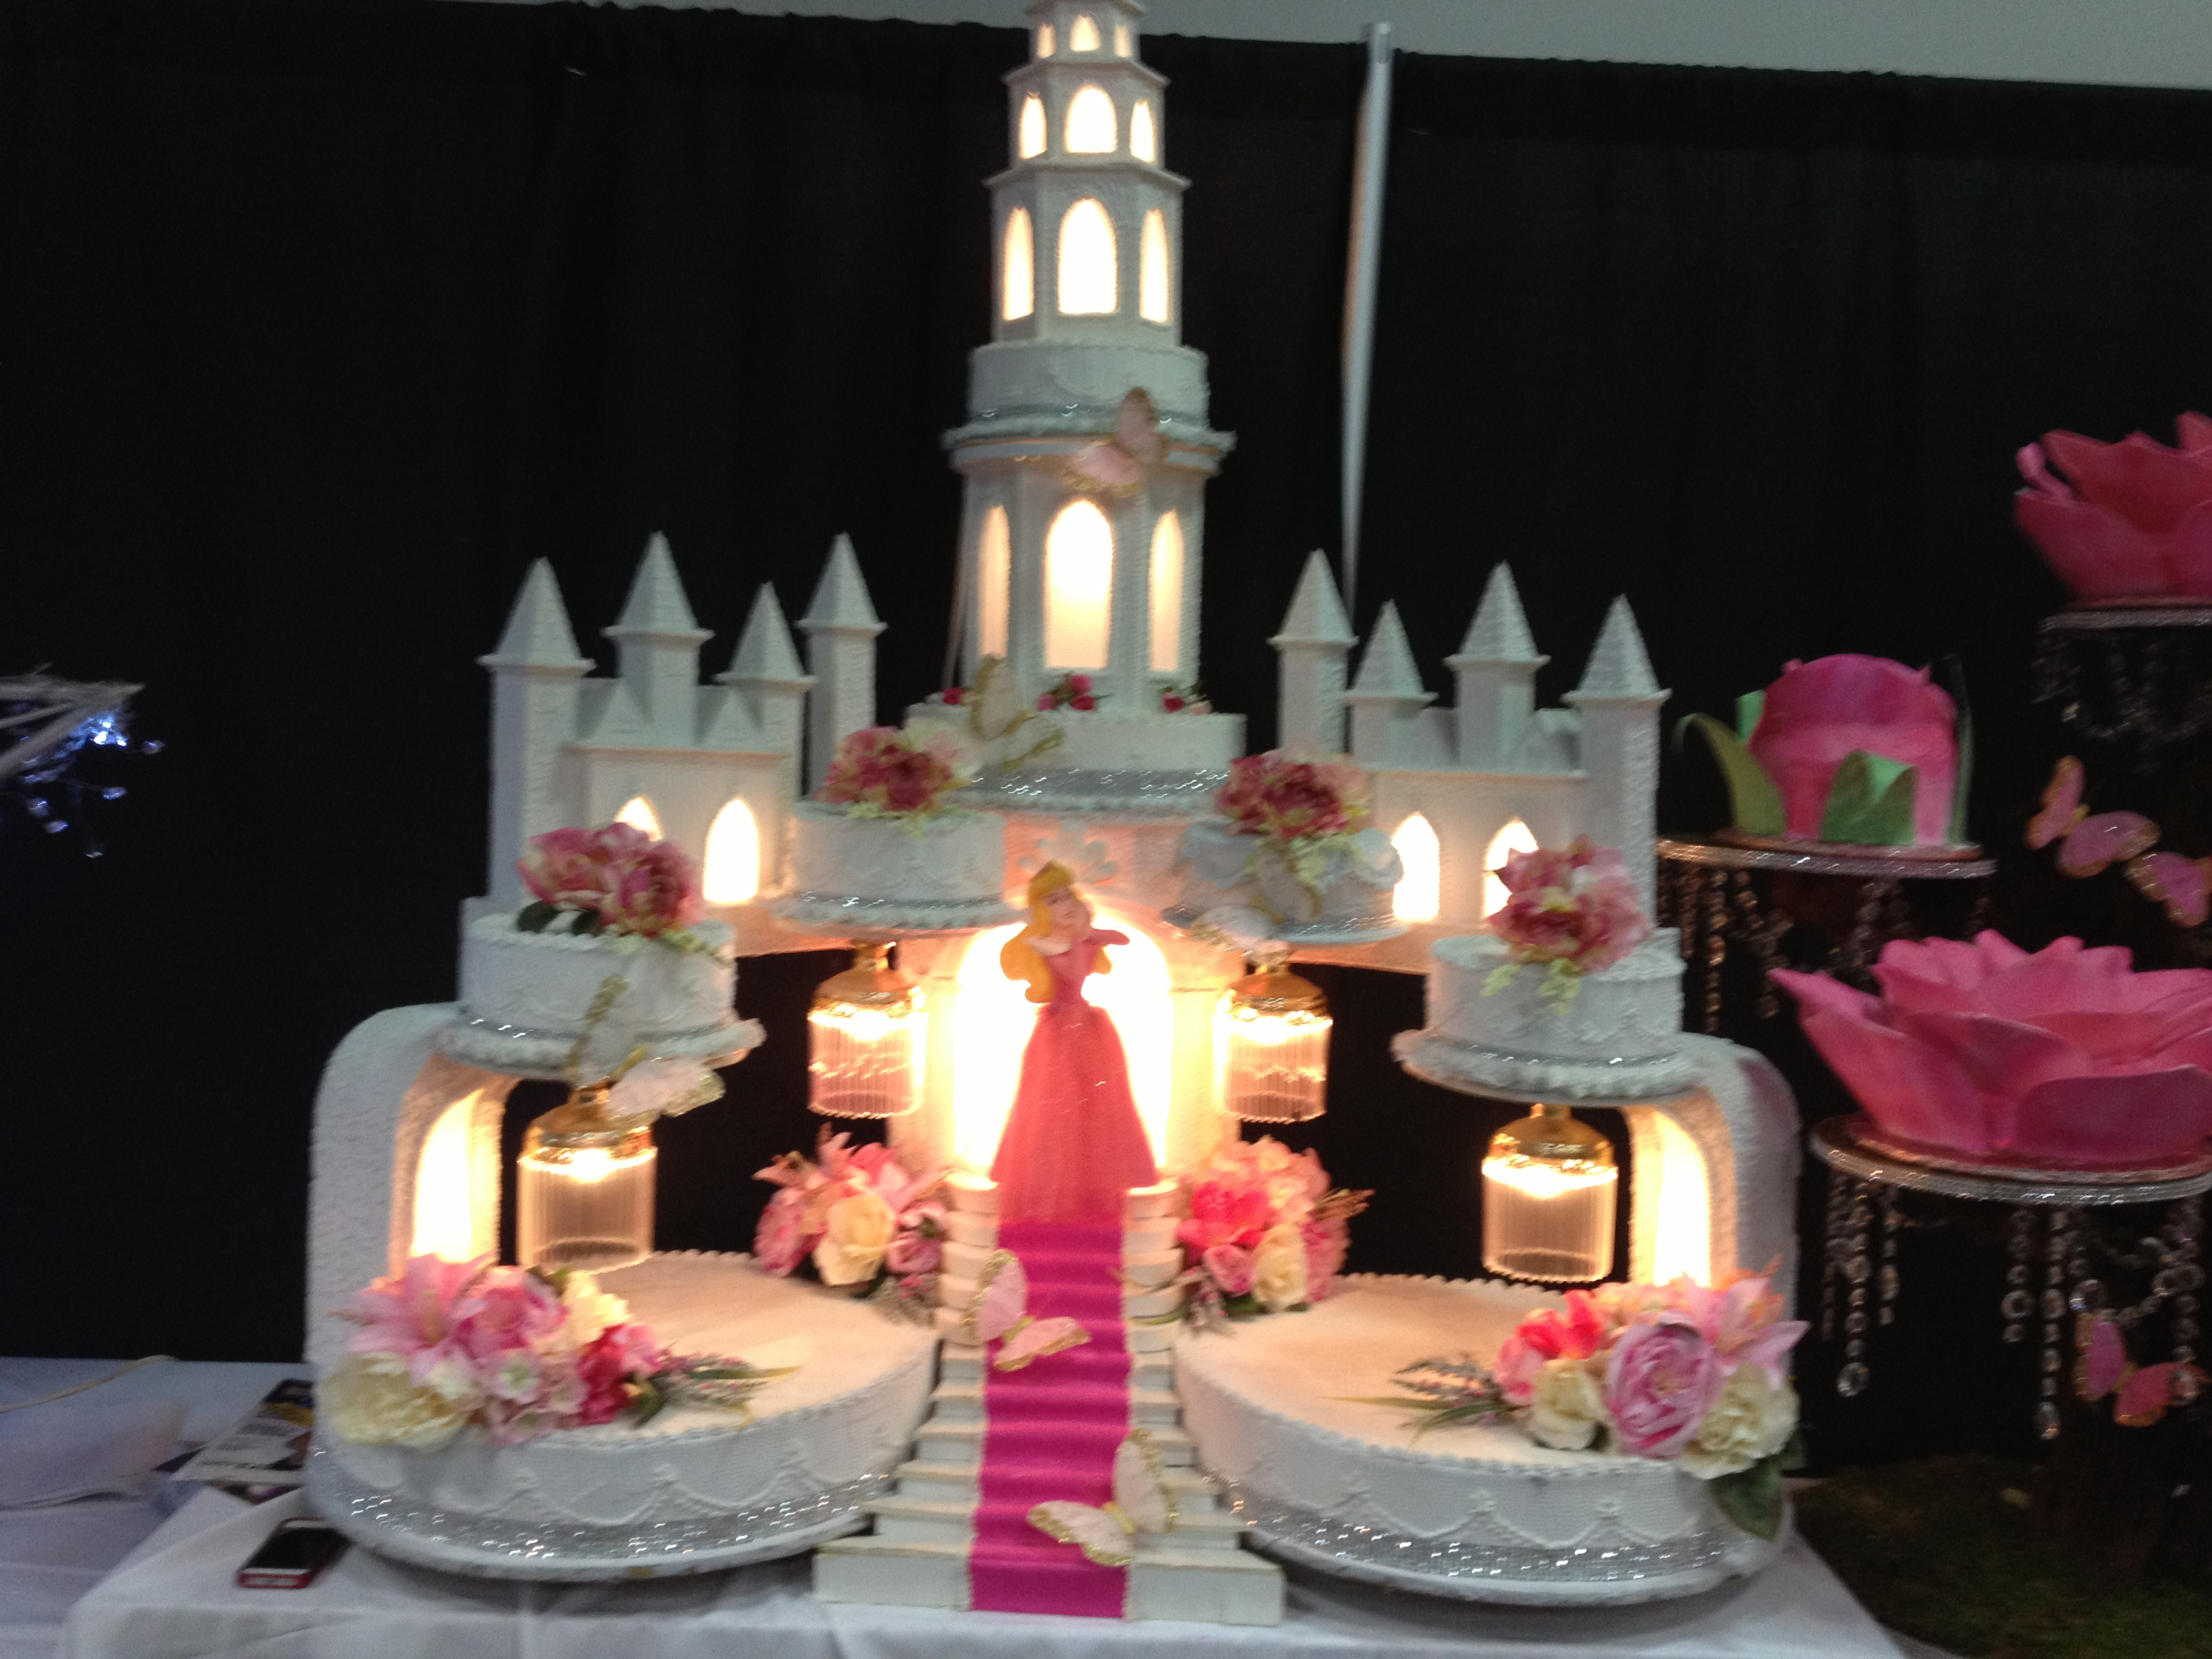 Unique Quincea Era Cakes From The Ontario Expo